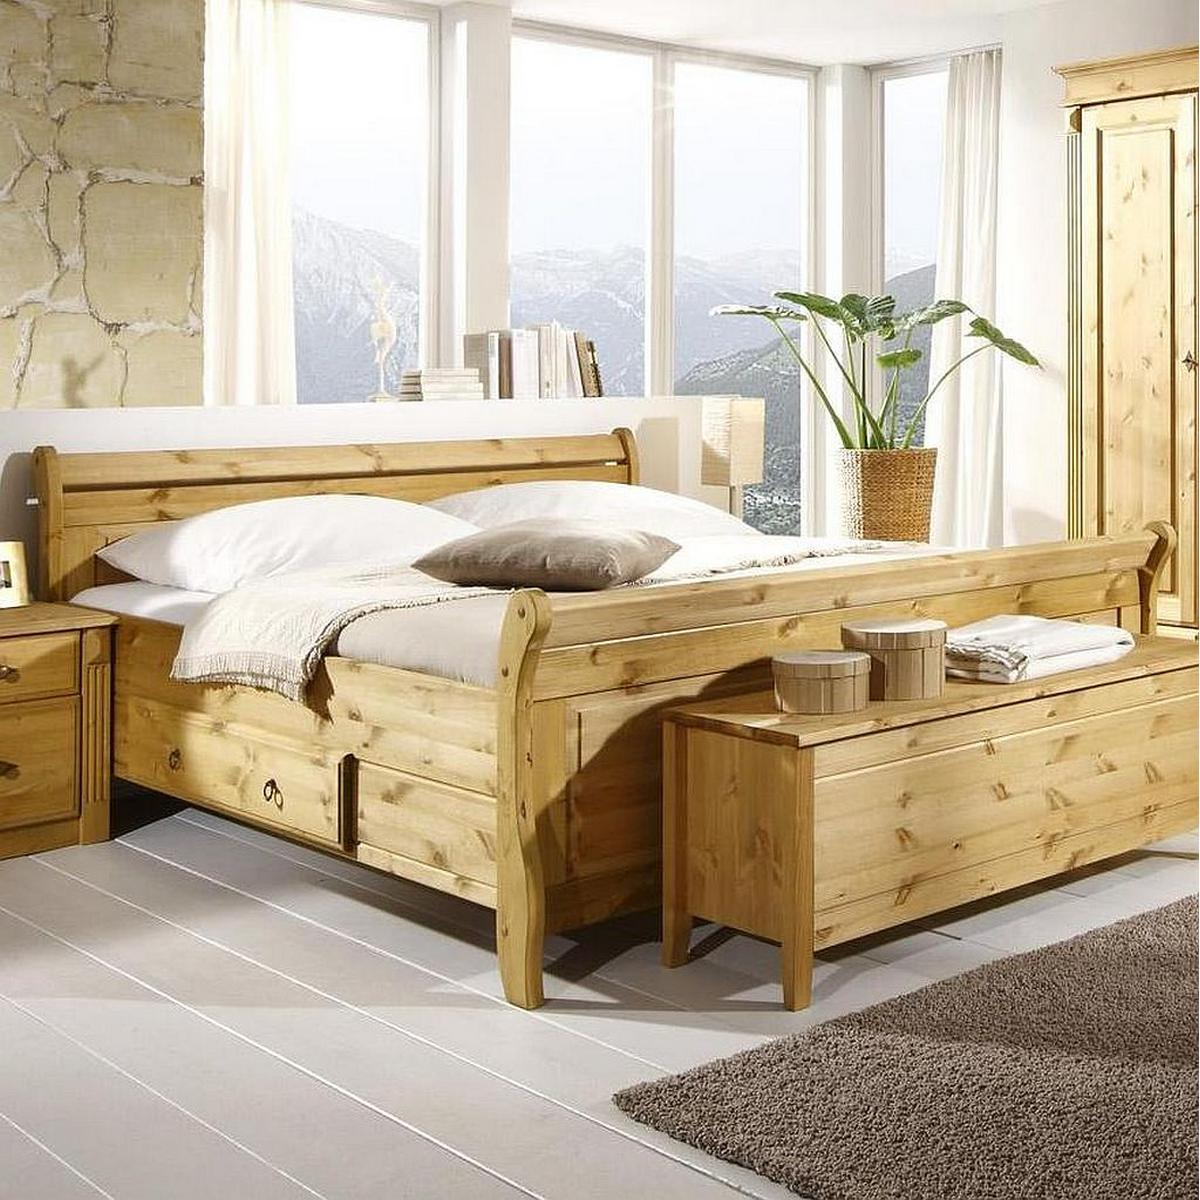 massivholz schubladenbett doppelbett mit schubladen landhaus 180x200 kiefer massiv gelaugt ge lt. Black Bedroom Furniture Sets. Home Design Ideas